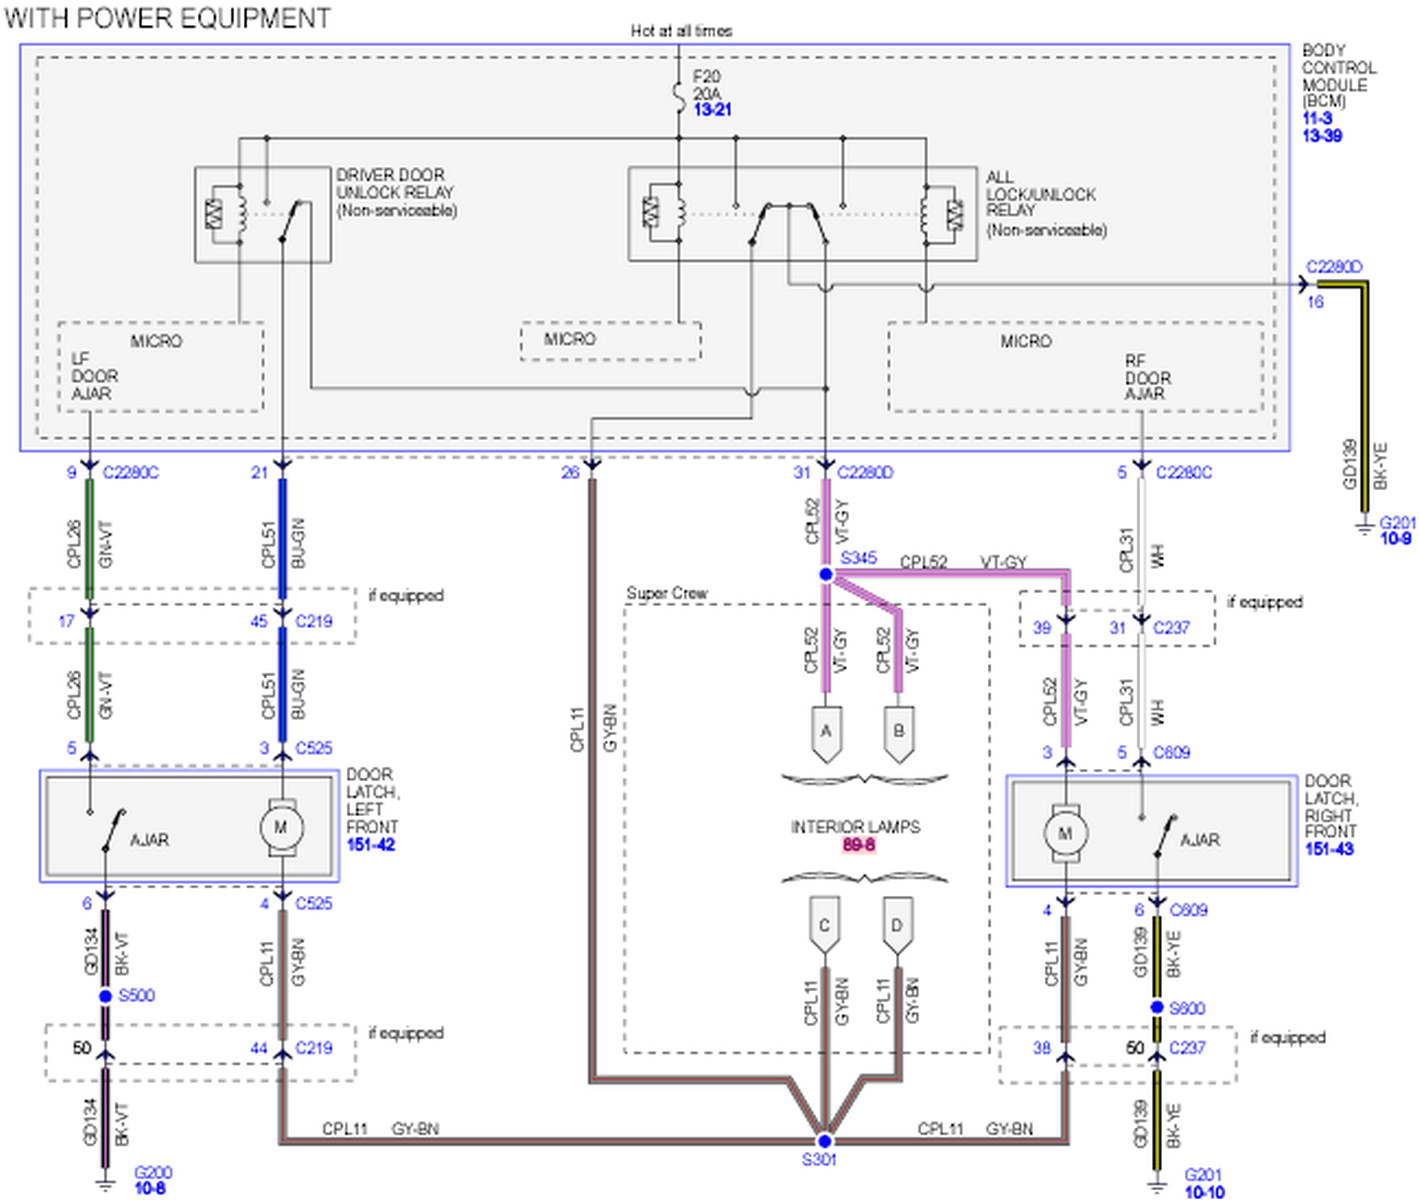 Ford Radio Wiring Harness Diagram Diagram Also ford F 150 Wiring Harness Diagram In Addition ford F